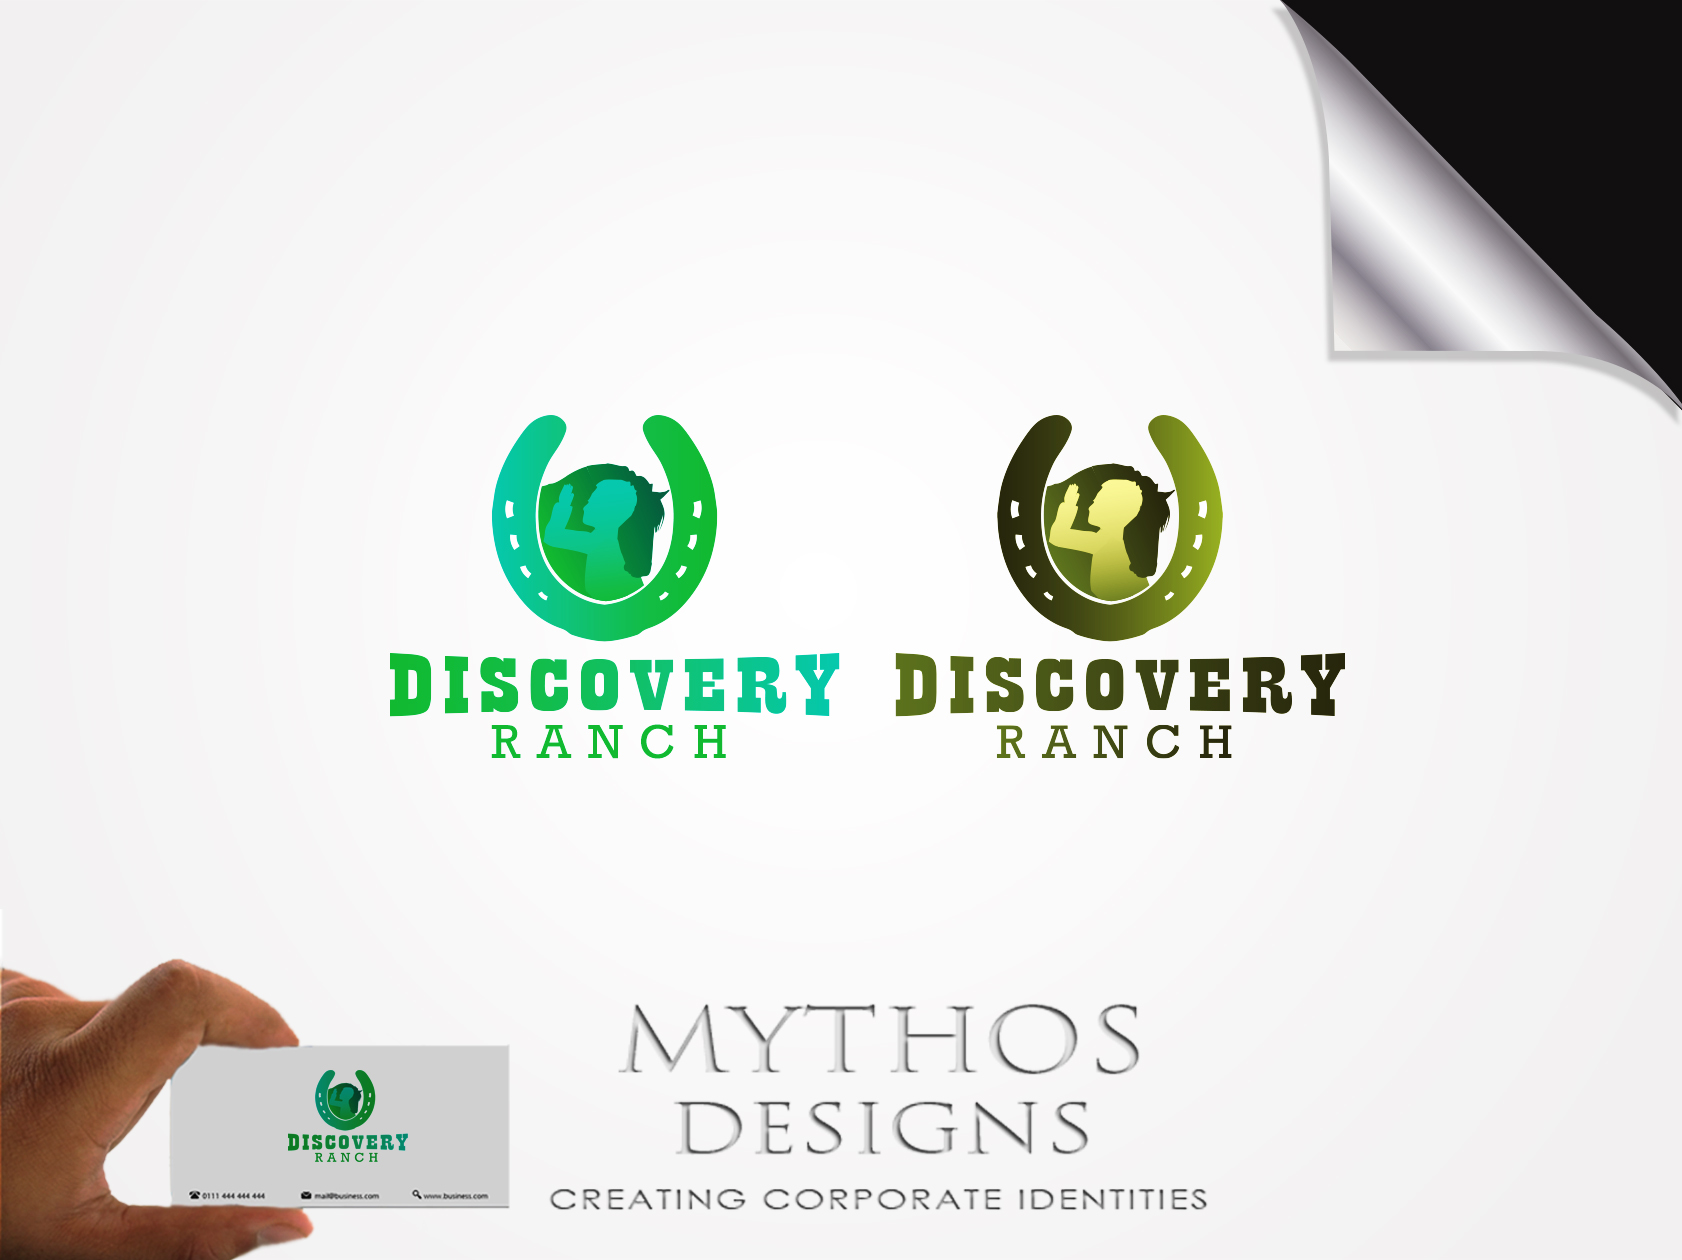 Logo Design by Mythos Designs - Entry No. 135 in the Logo Design Contest Creative Logo Design for Discovery Ranch.